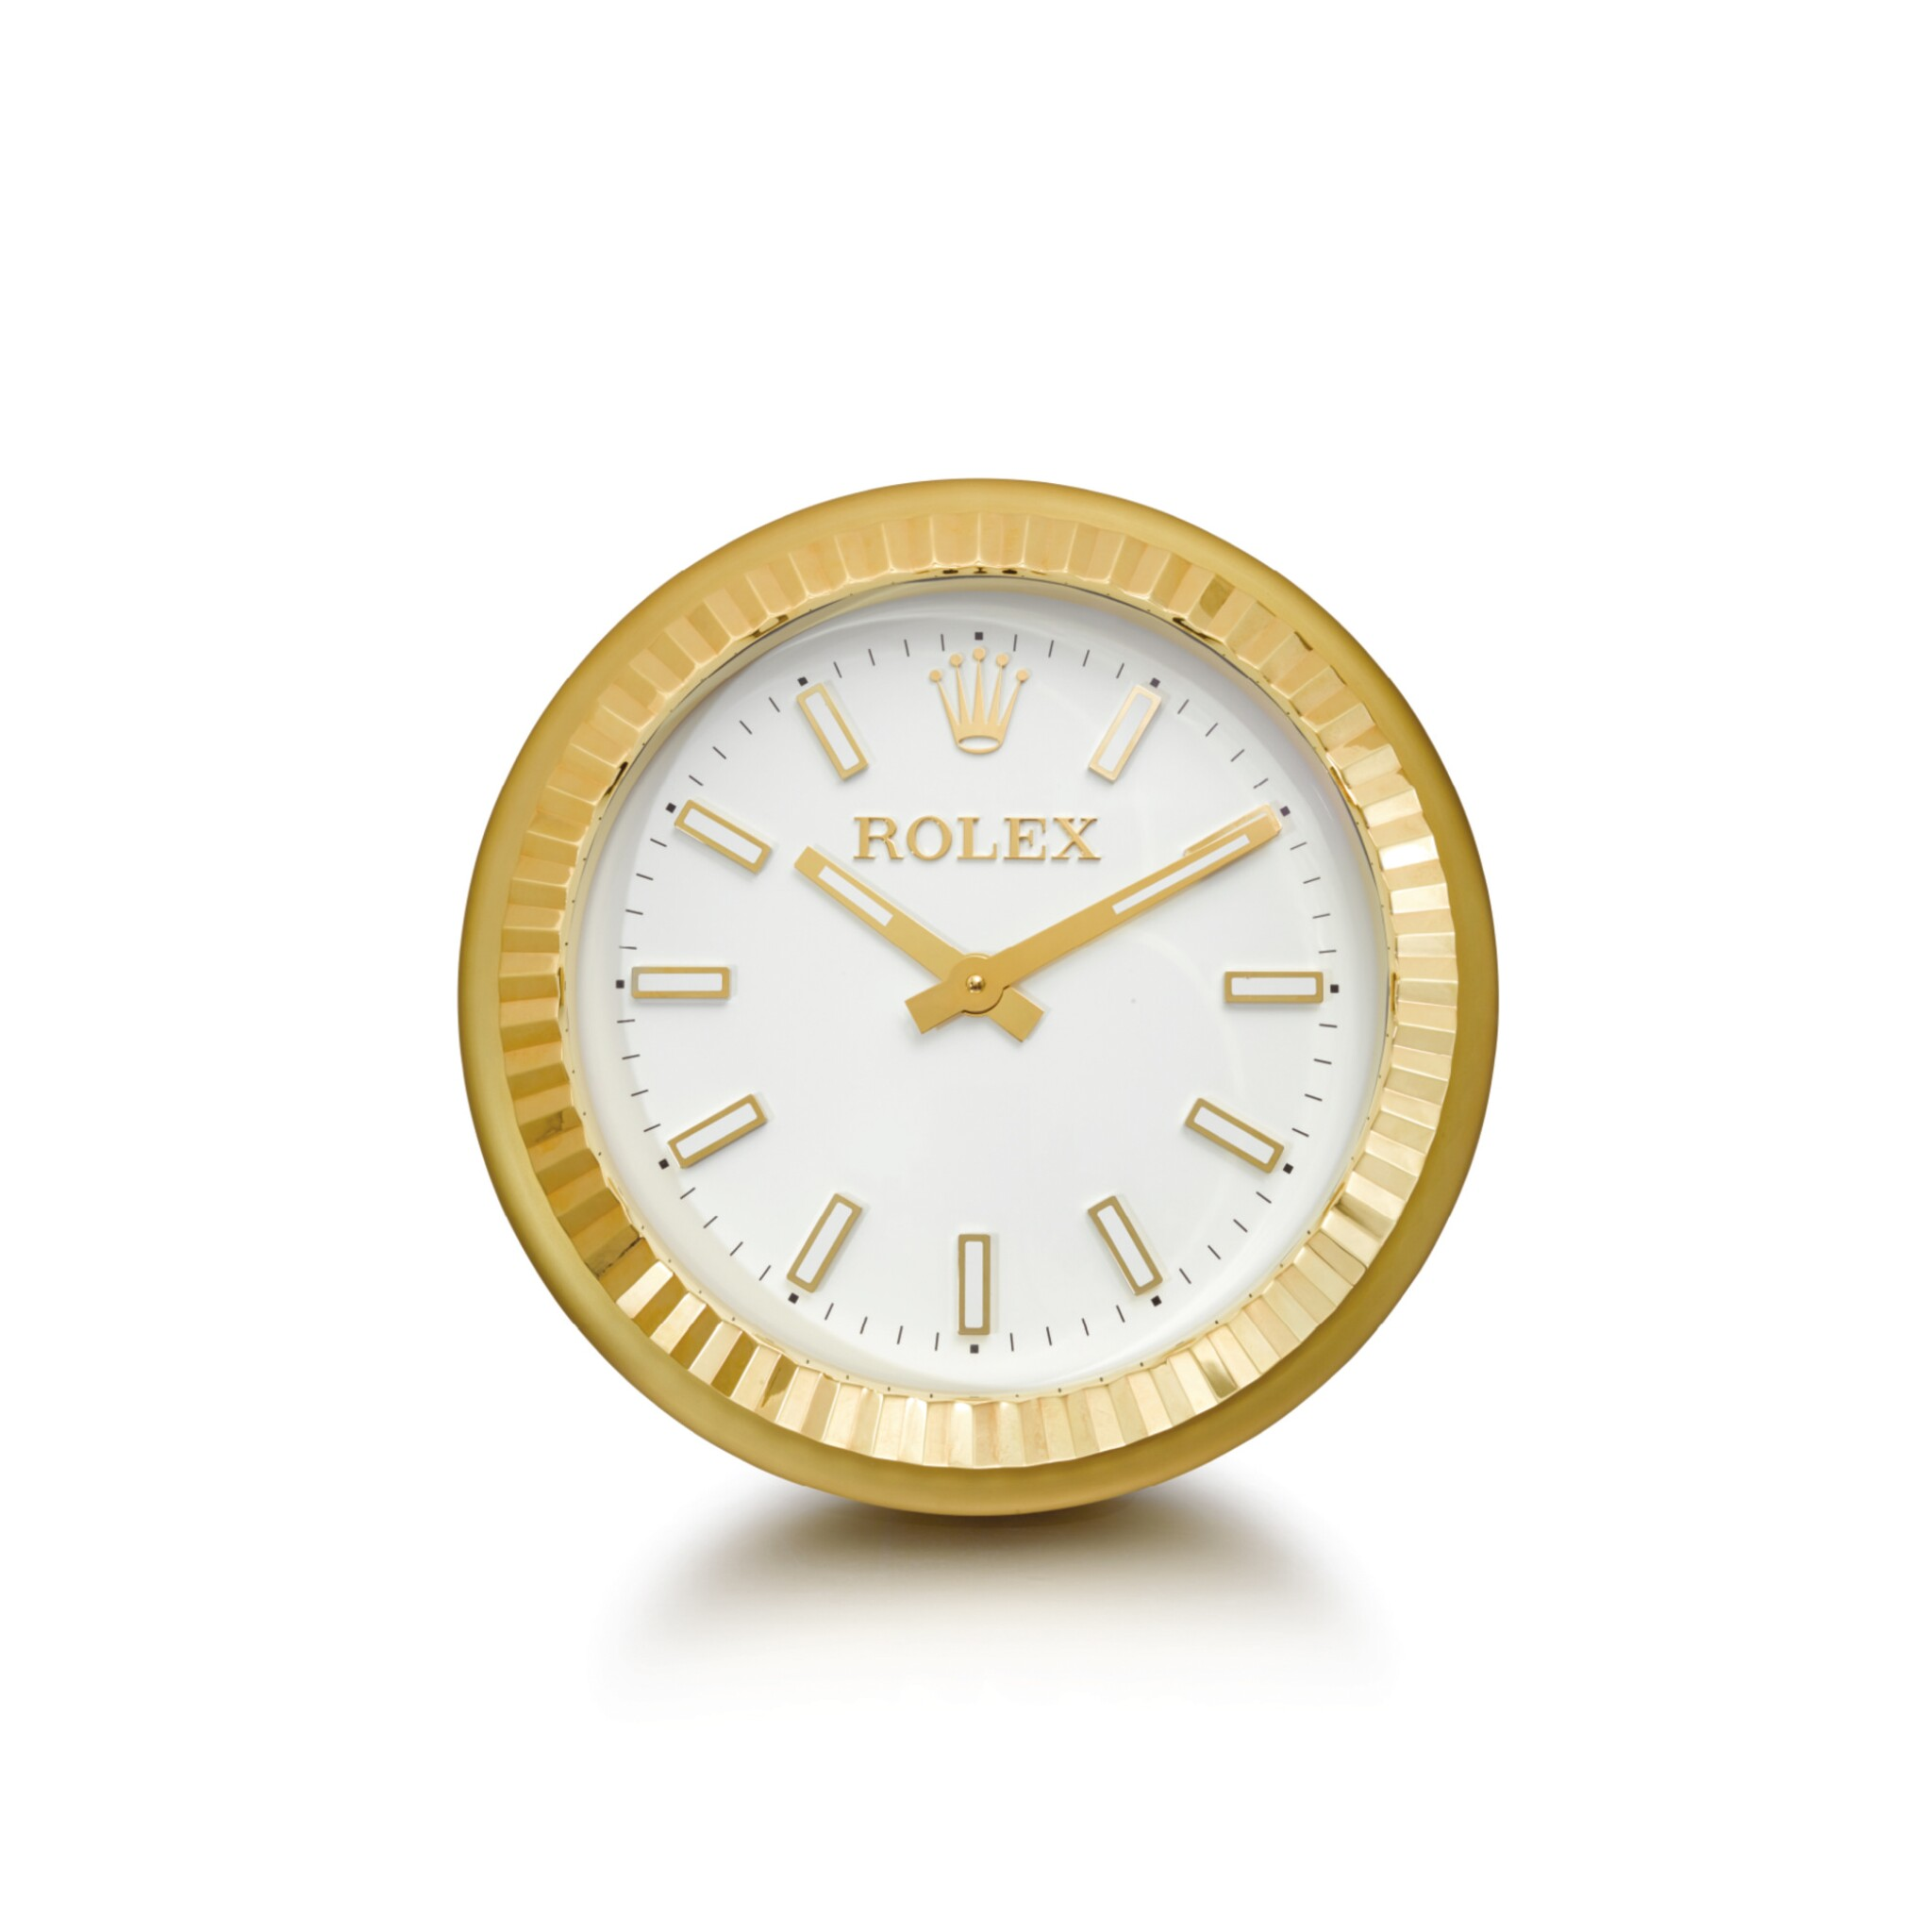 View full screen - View 1 of Lot 2003. ROLEX, MANUFACTURED BY INDUCTA  |  A LARGE GILT BRASS WALL CLOCK, CIRCA 2010 | 勞力士,由Inducta製造 | 鍍金銅製掛鐘,外殼編號080612,約2010年製.